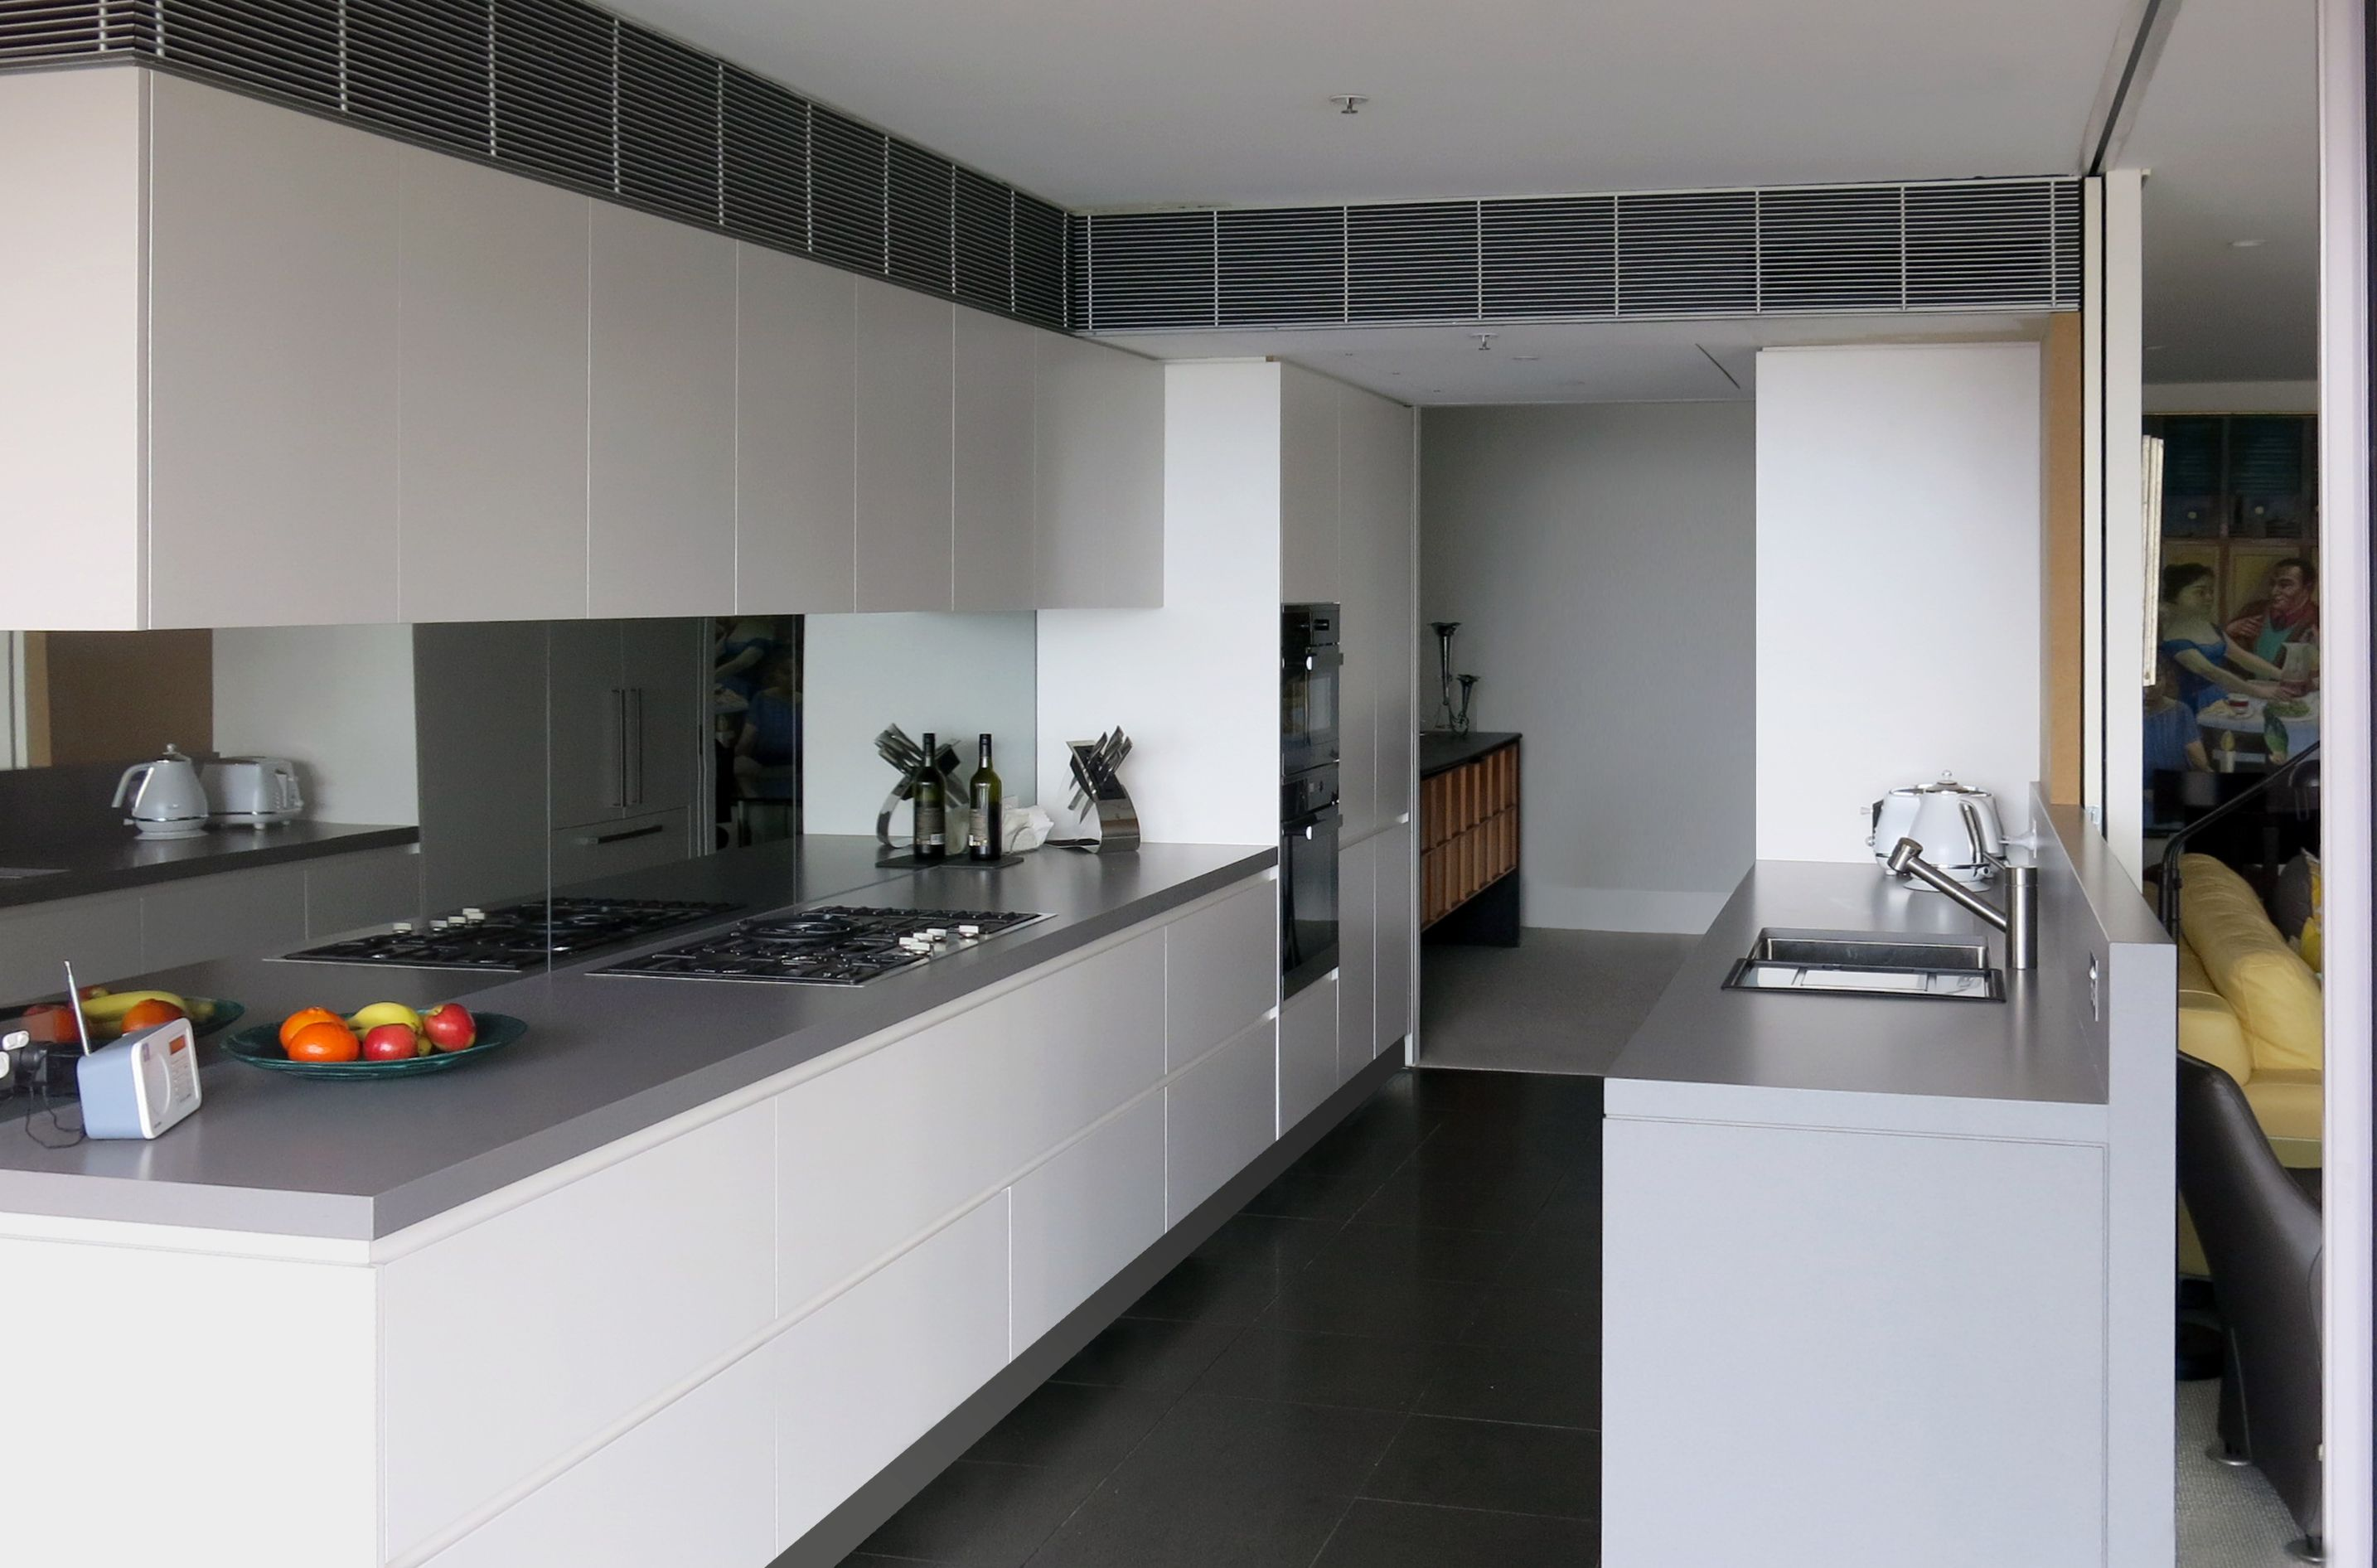 A Gelosa Kitchen Finished In White Satin Polyurethane Shadow Line Gris Expo Benchtop From Silestone Kitchen Renovation Kitchen Design Taupe Kitchen